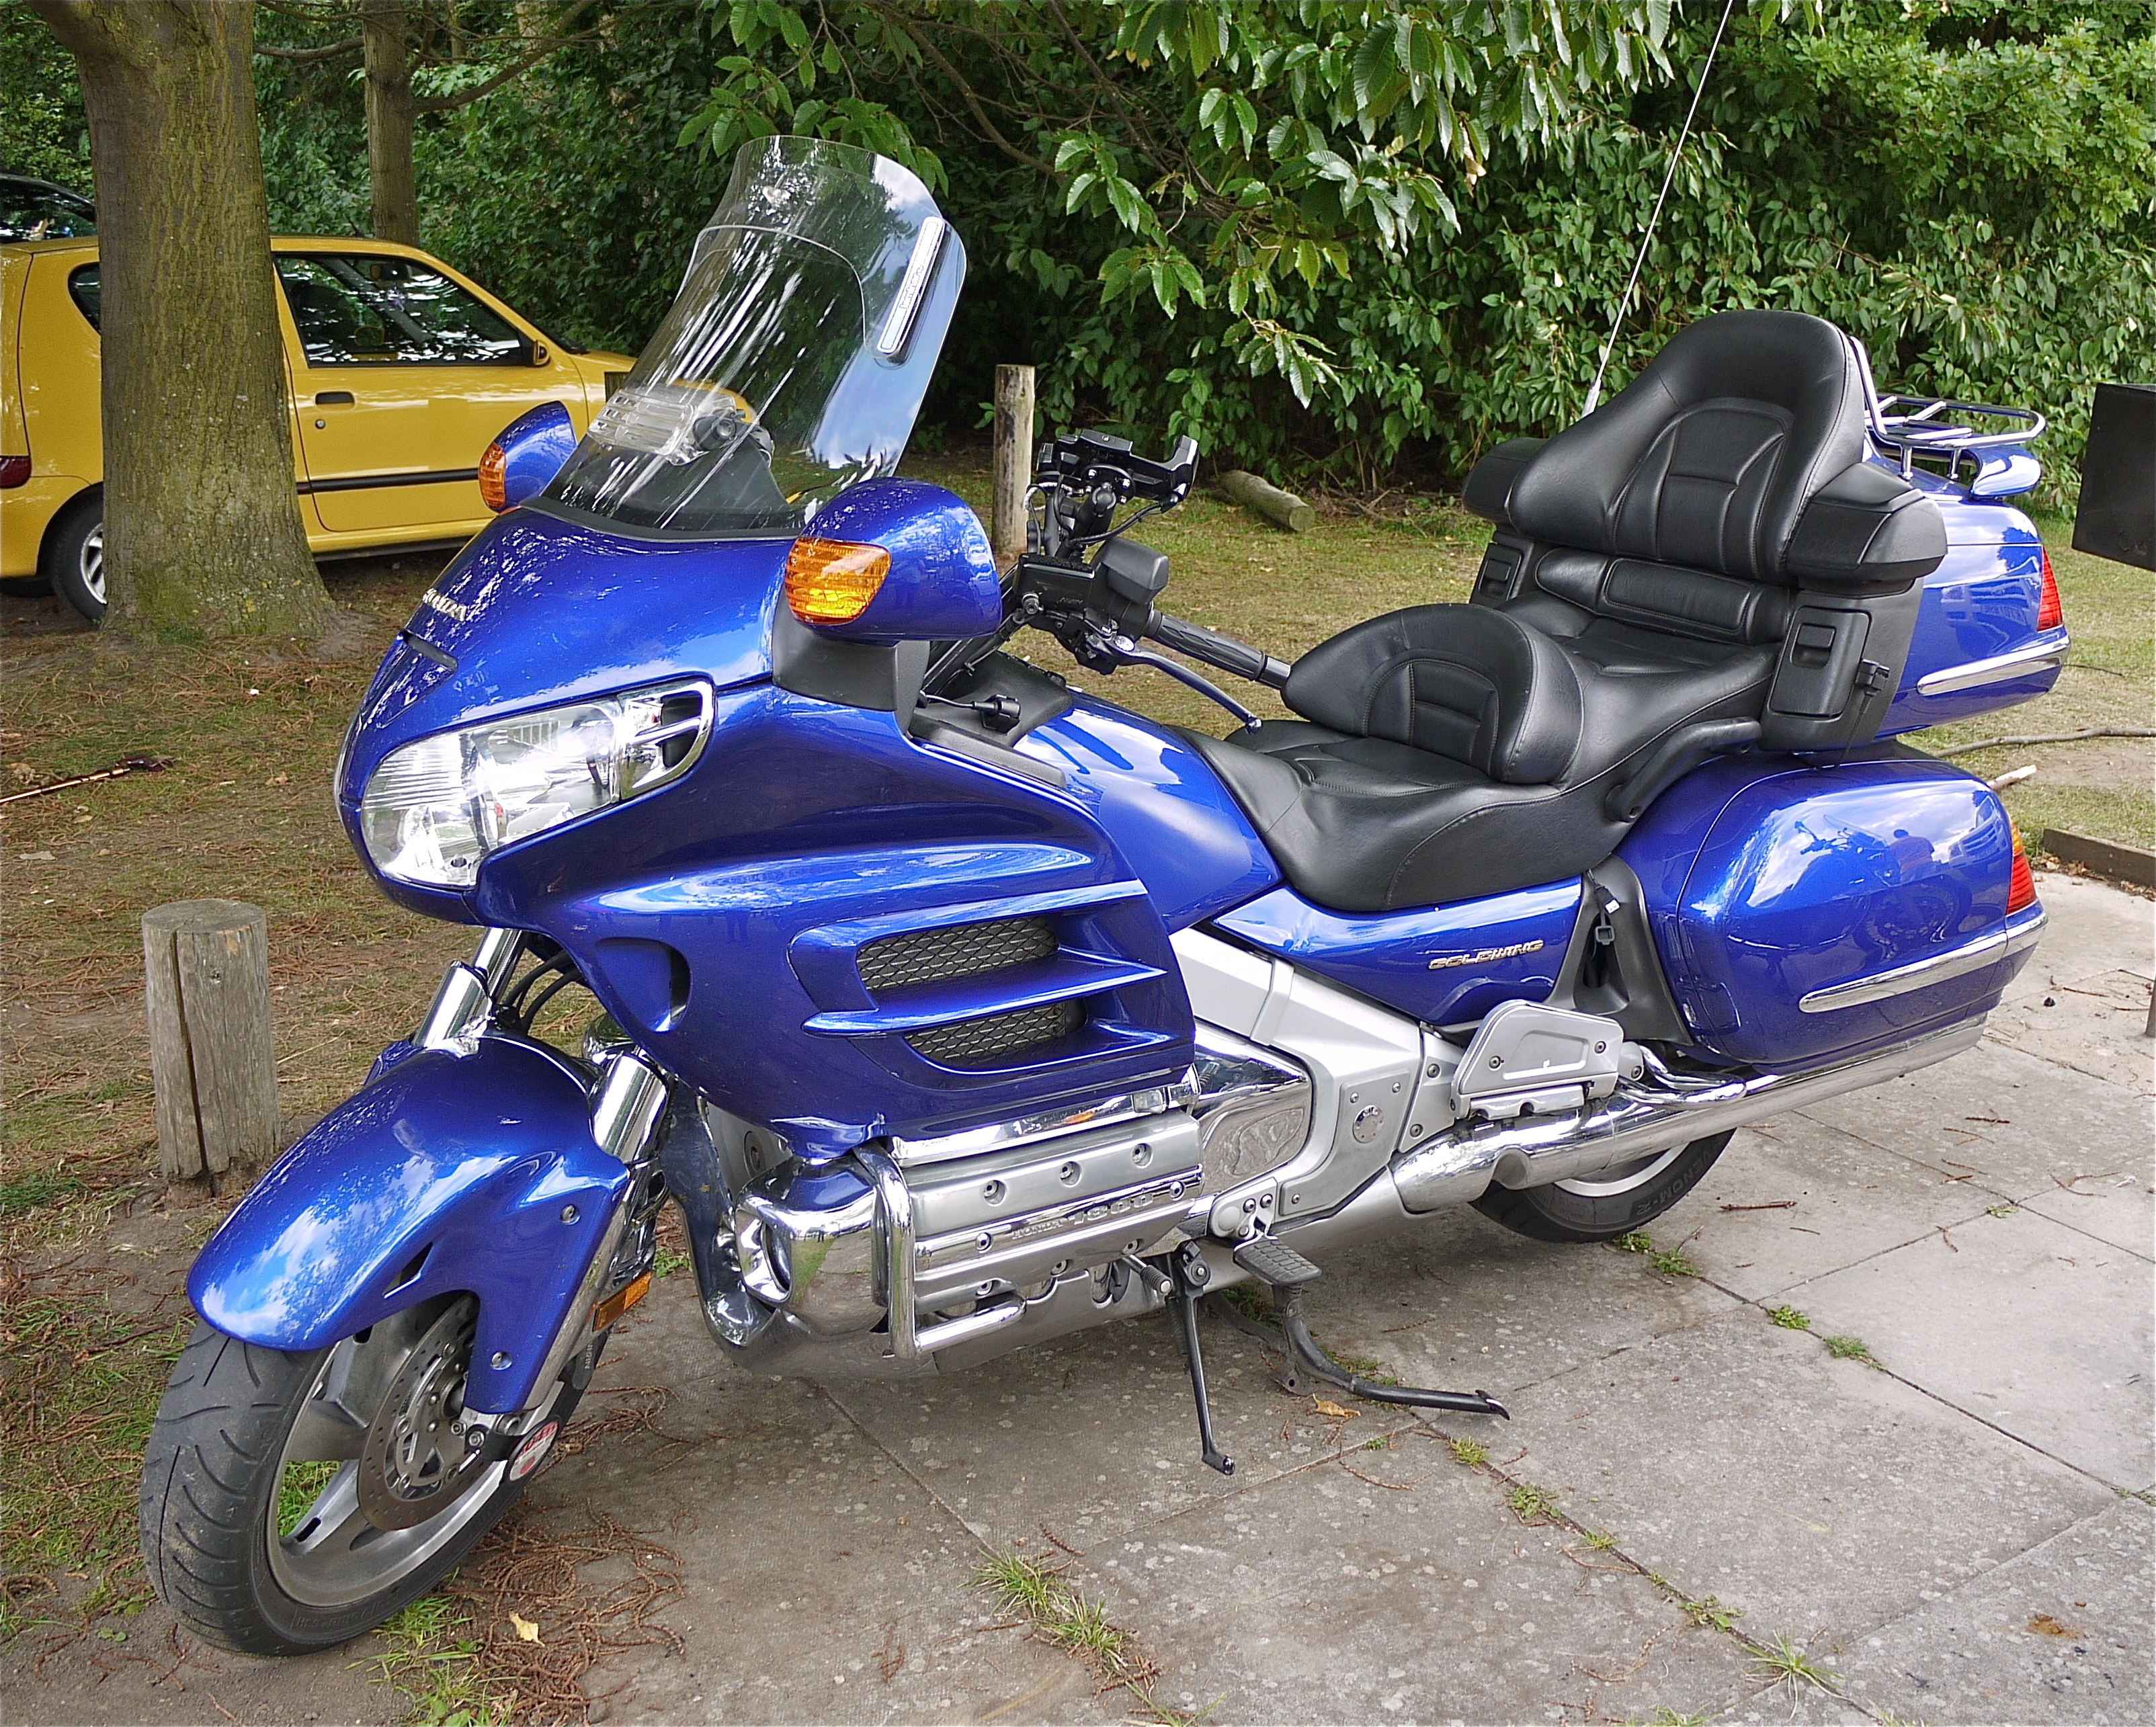 Honda GL 1800 Gold Wing 2007 images #82143